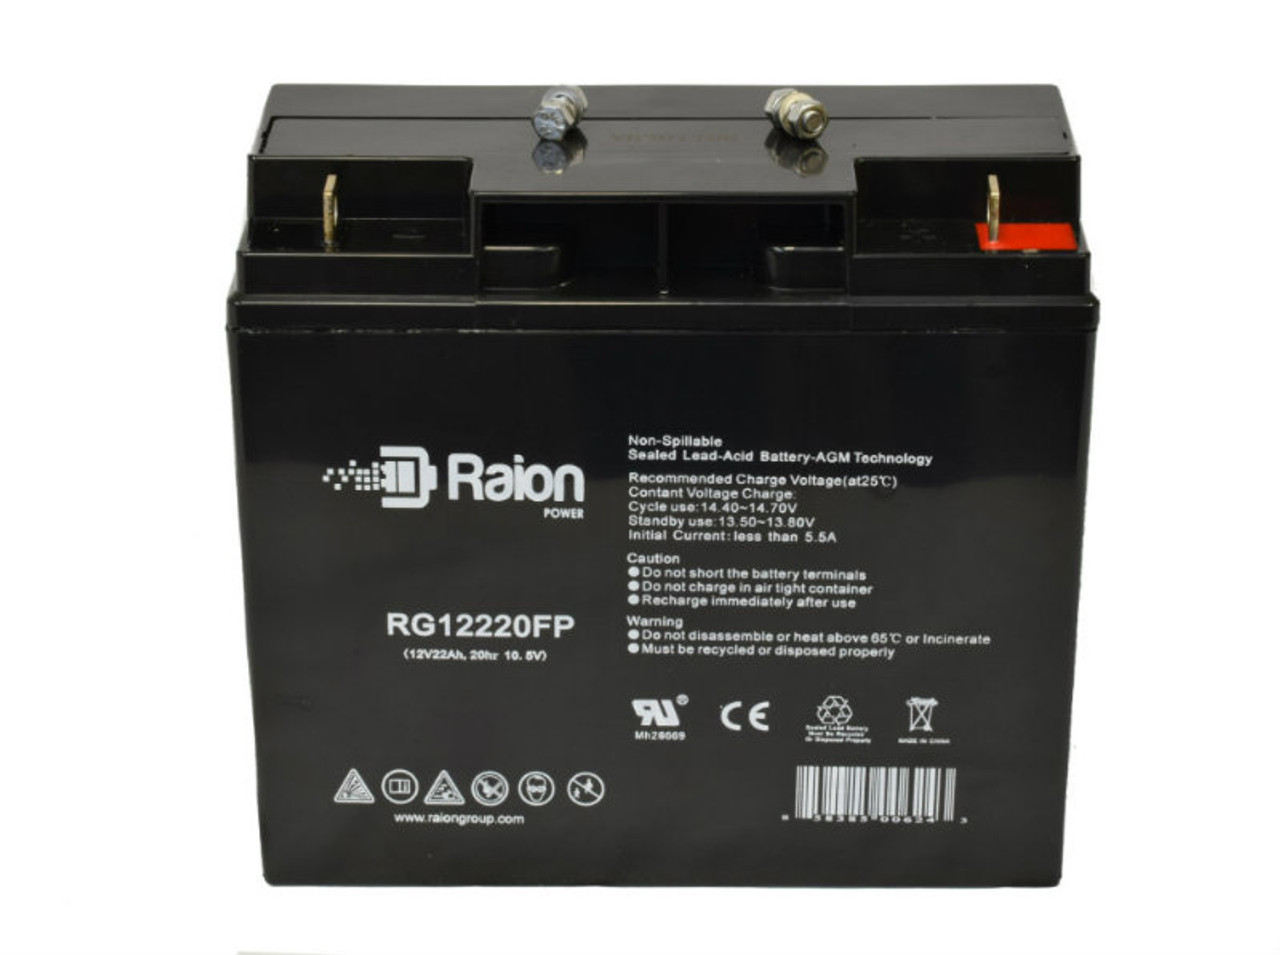 RG12220FP Sealed Lead Acid Battery Pack For IMC Heartway Nomad PF-3 Mobility Scooter